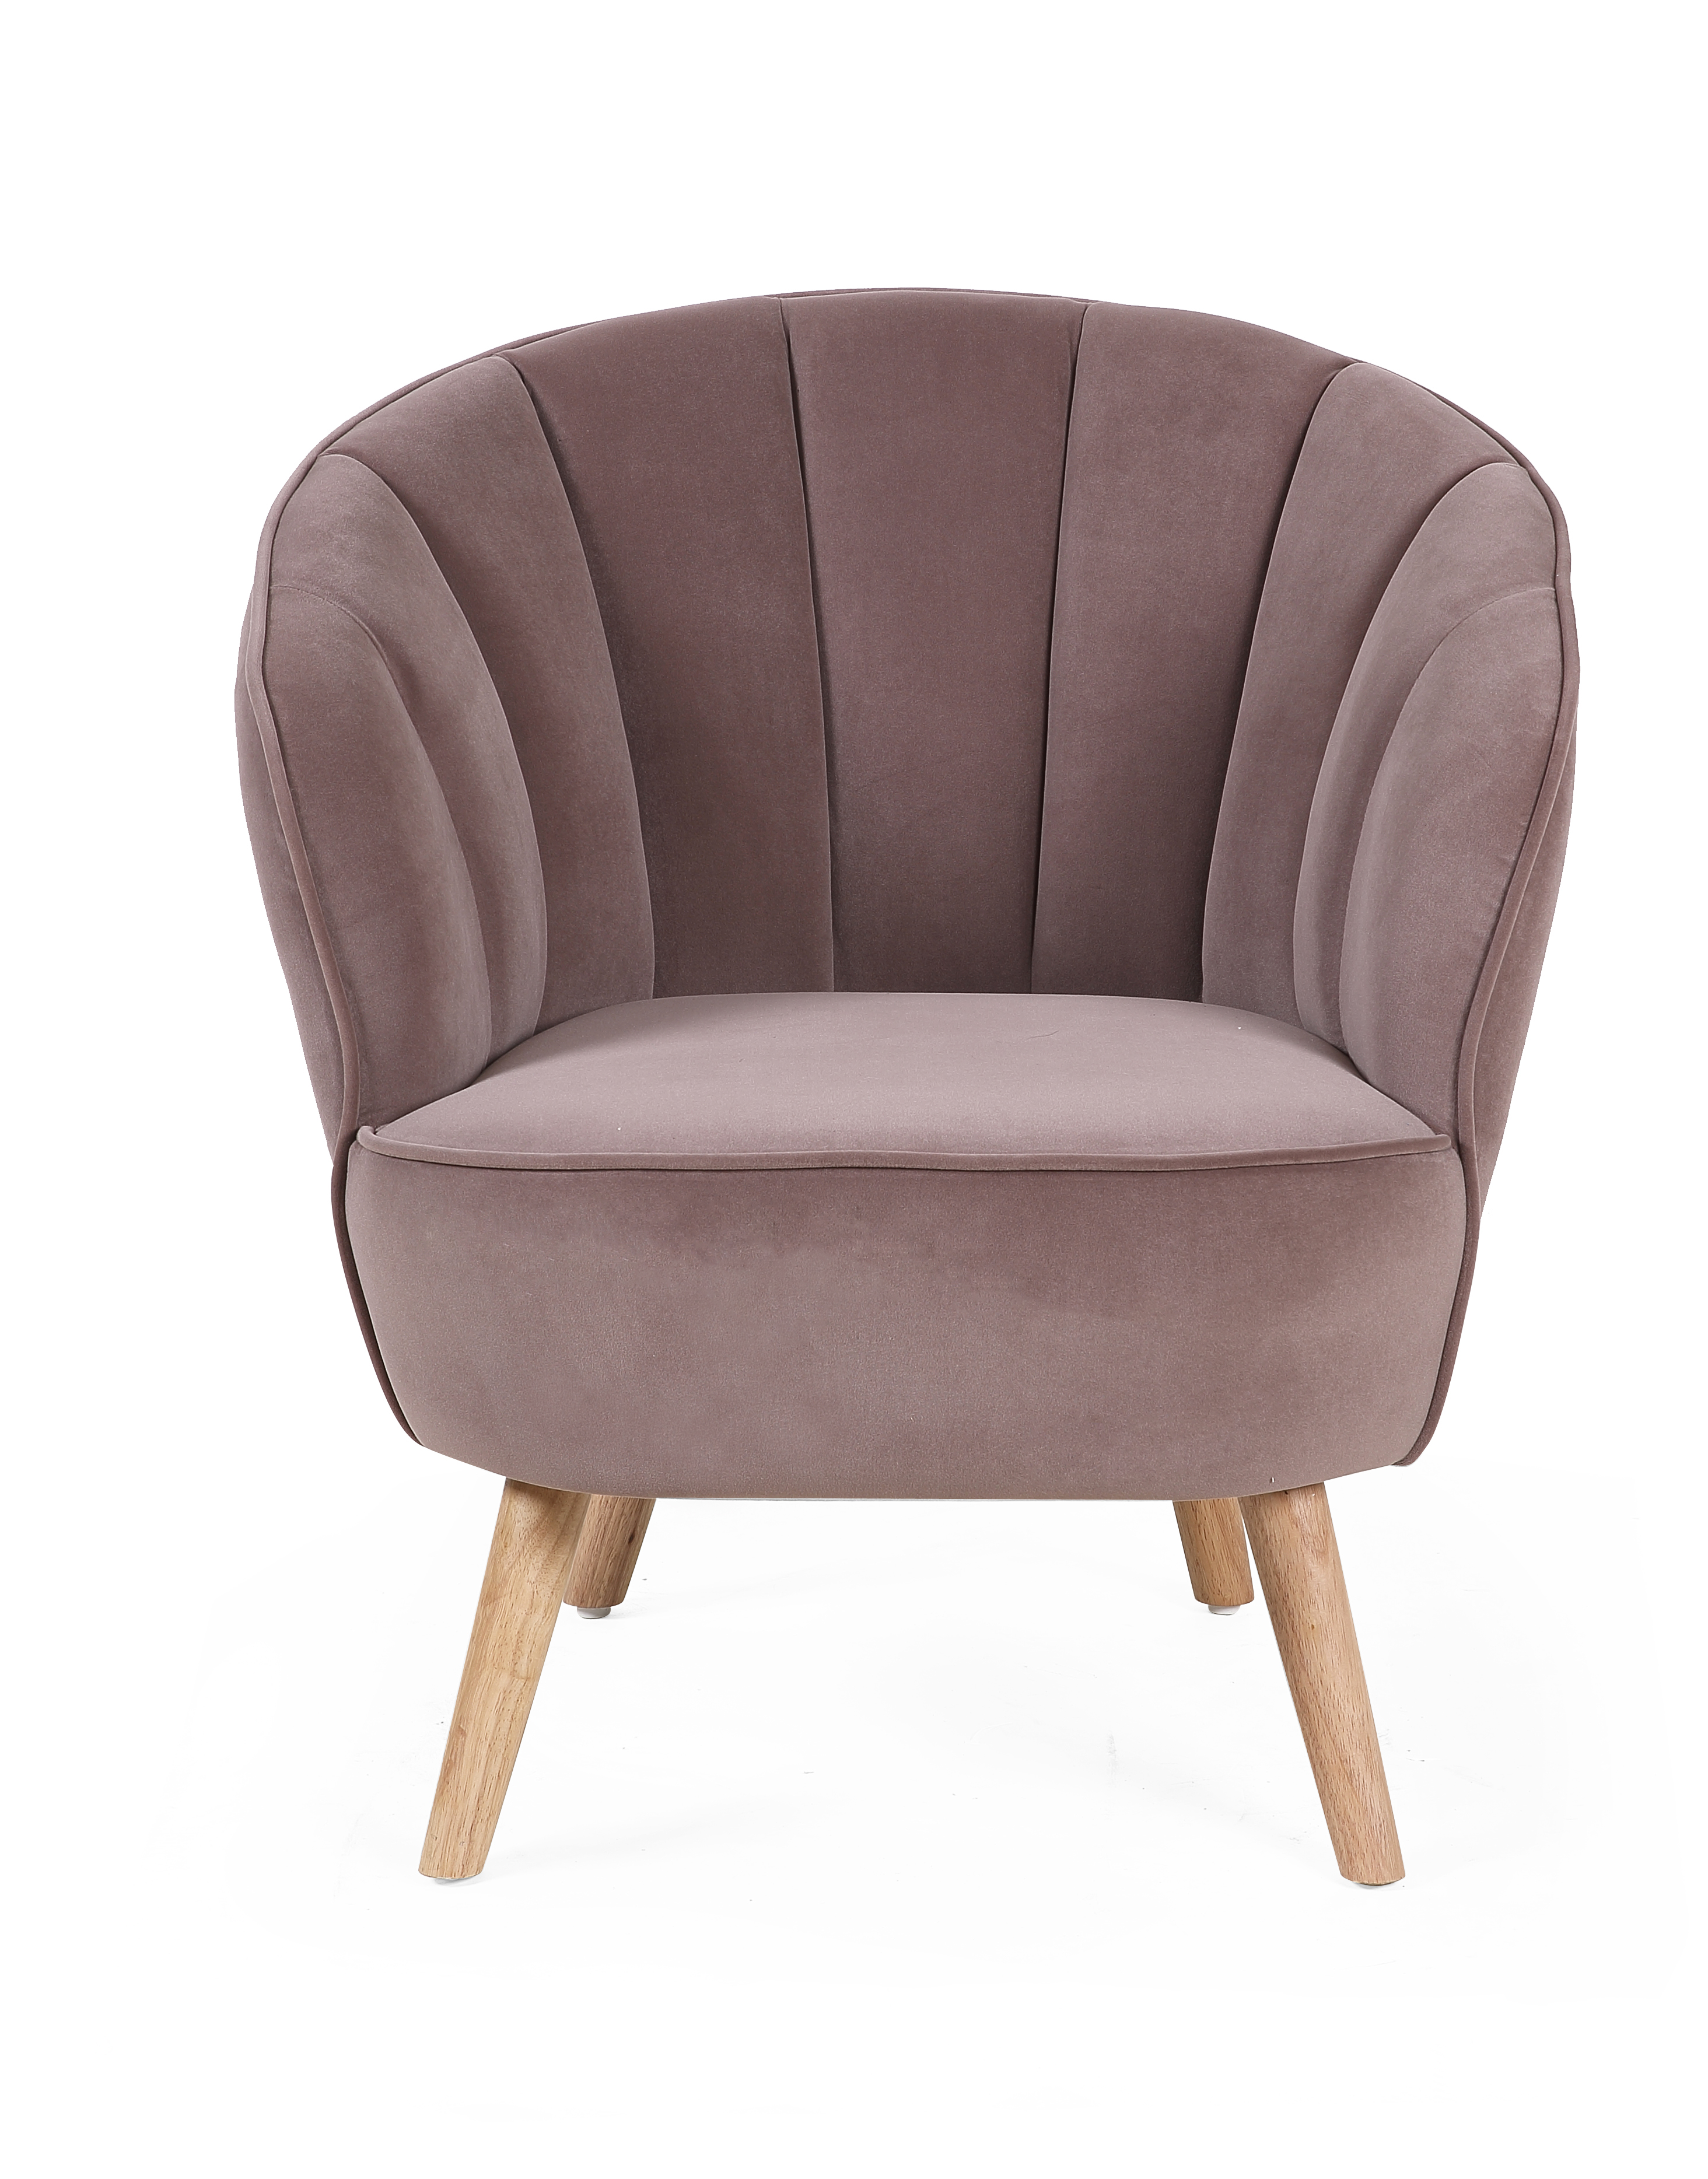 Heidi Tub Chair